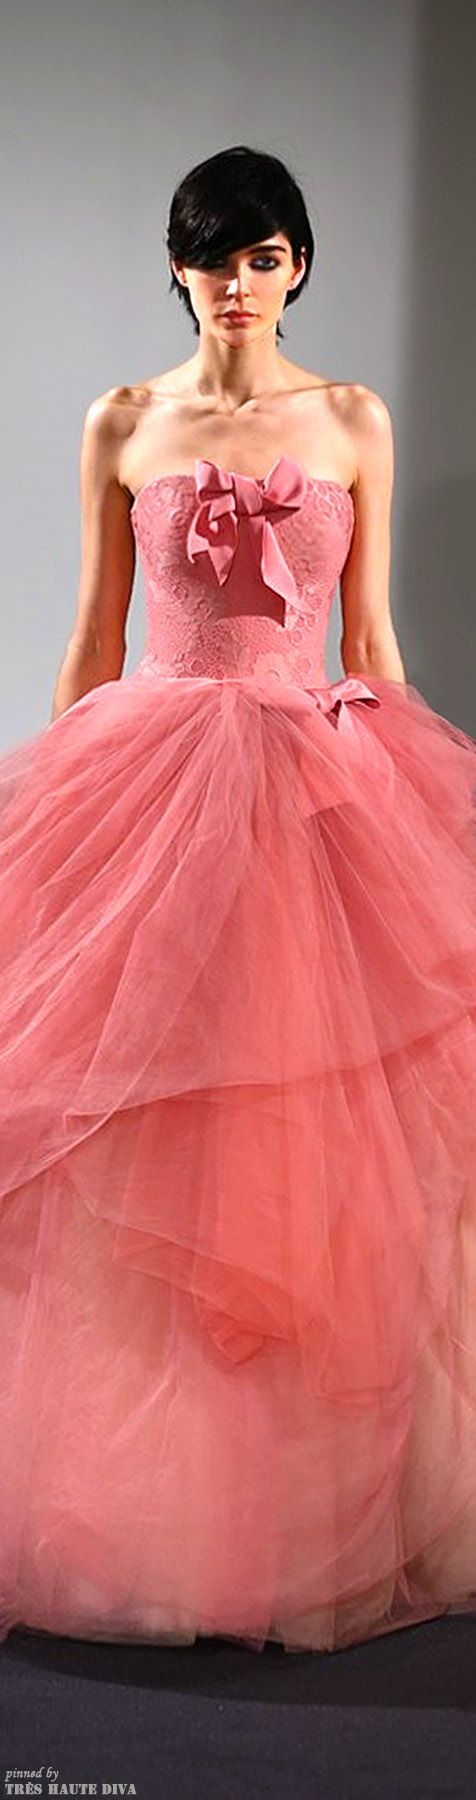 Vera Wang Bridal Fall 2014 ♔ Très Haute Diva ♔ | DISPLAY PINK ...